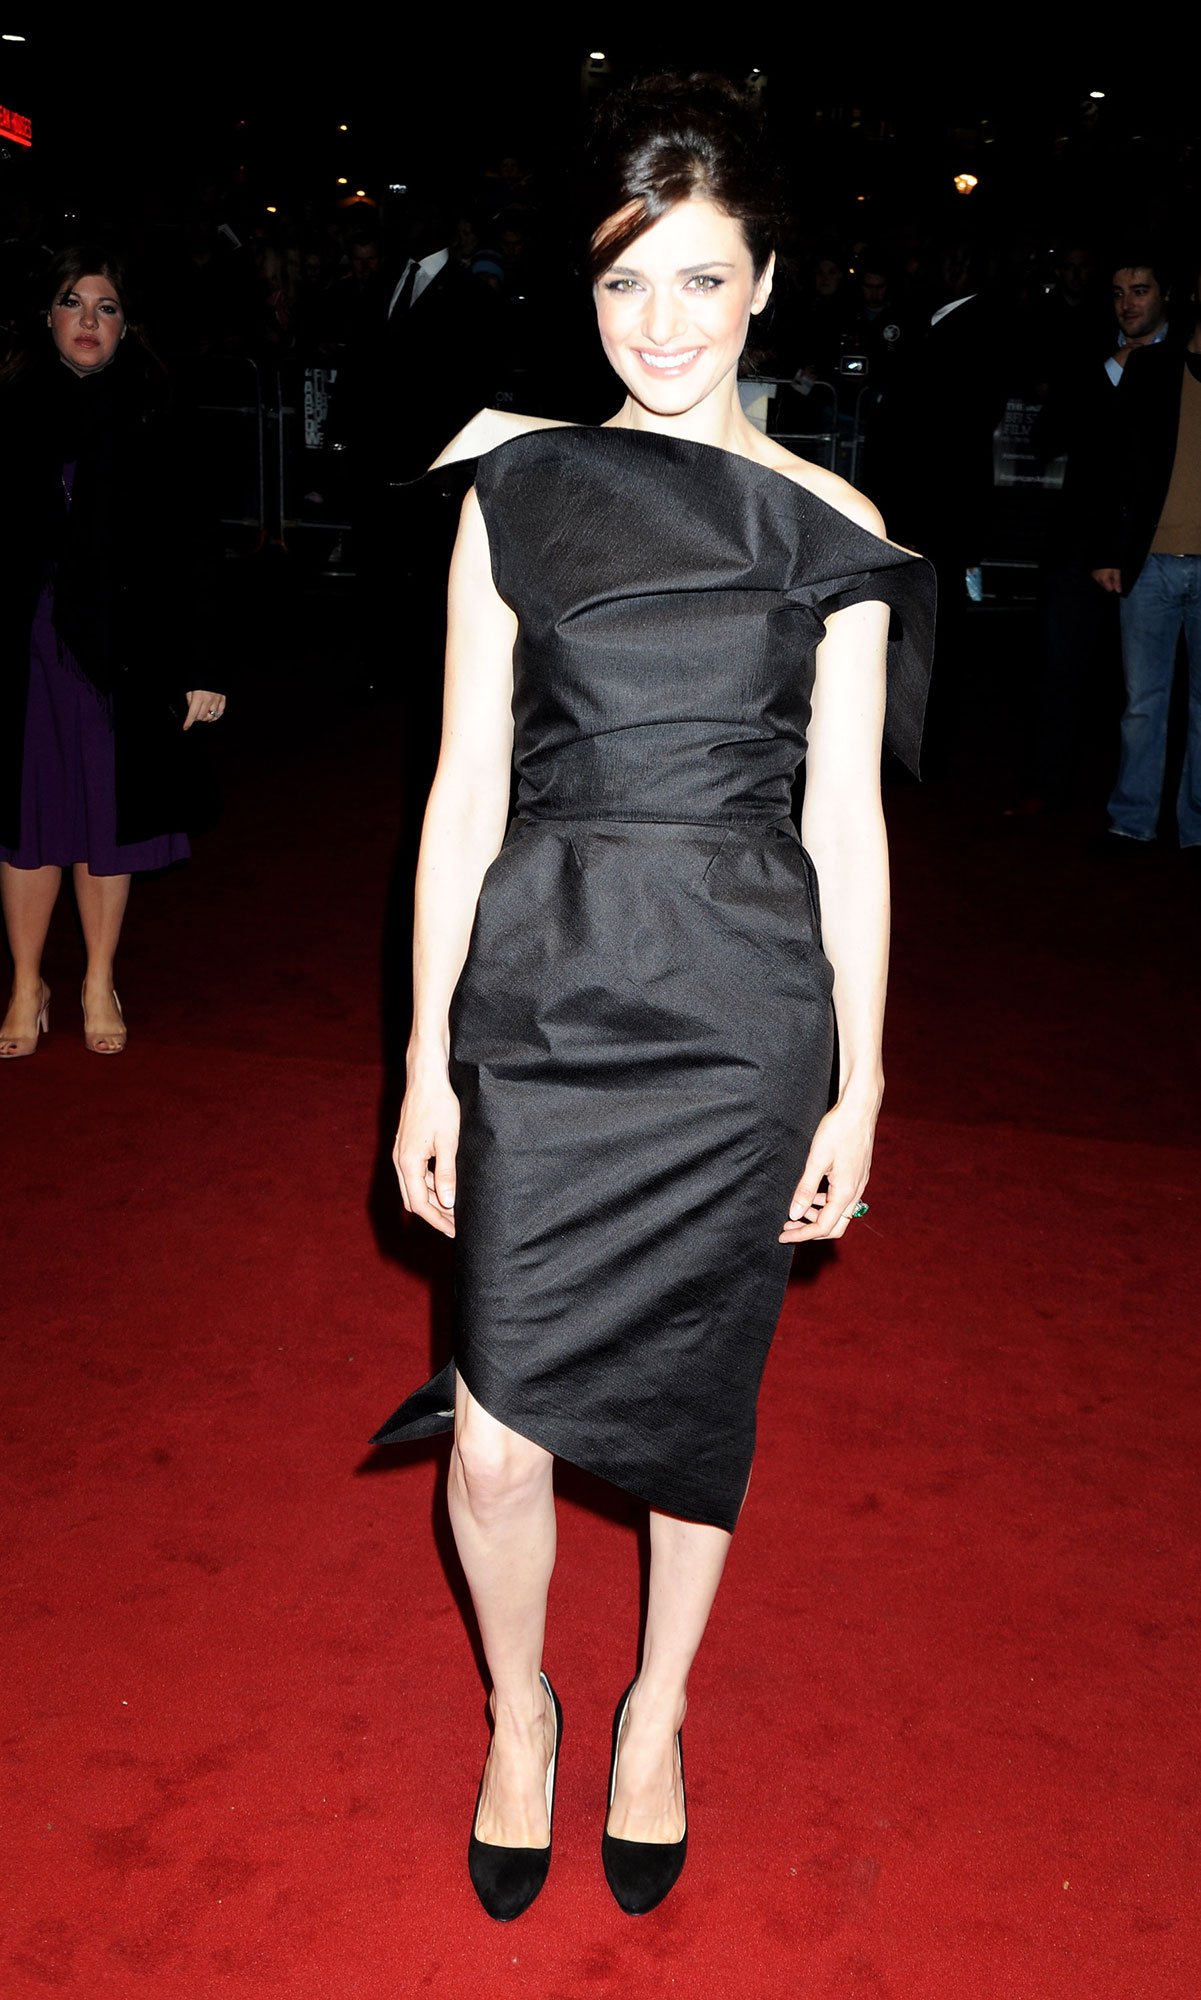 Happy Birthday, Rachel Weisz! See Her Hottest Red Carpet Looks - The British star added a bit of structural dimension and asymmetry to her BFI London Film Festival look in 2008.